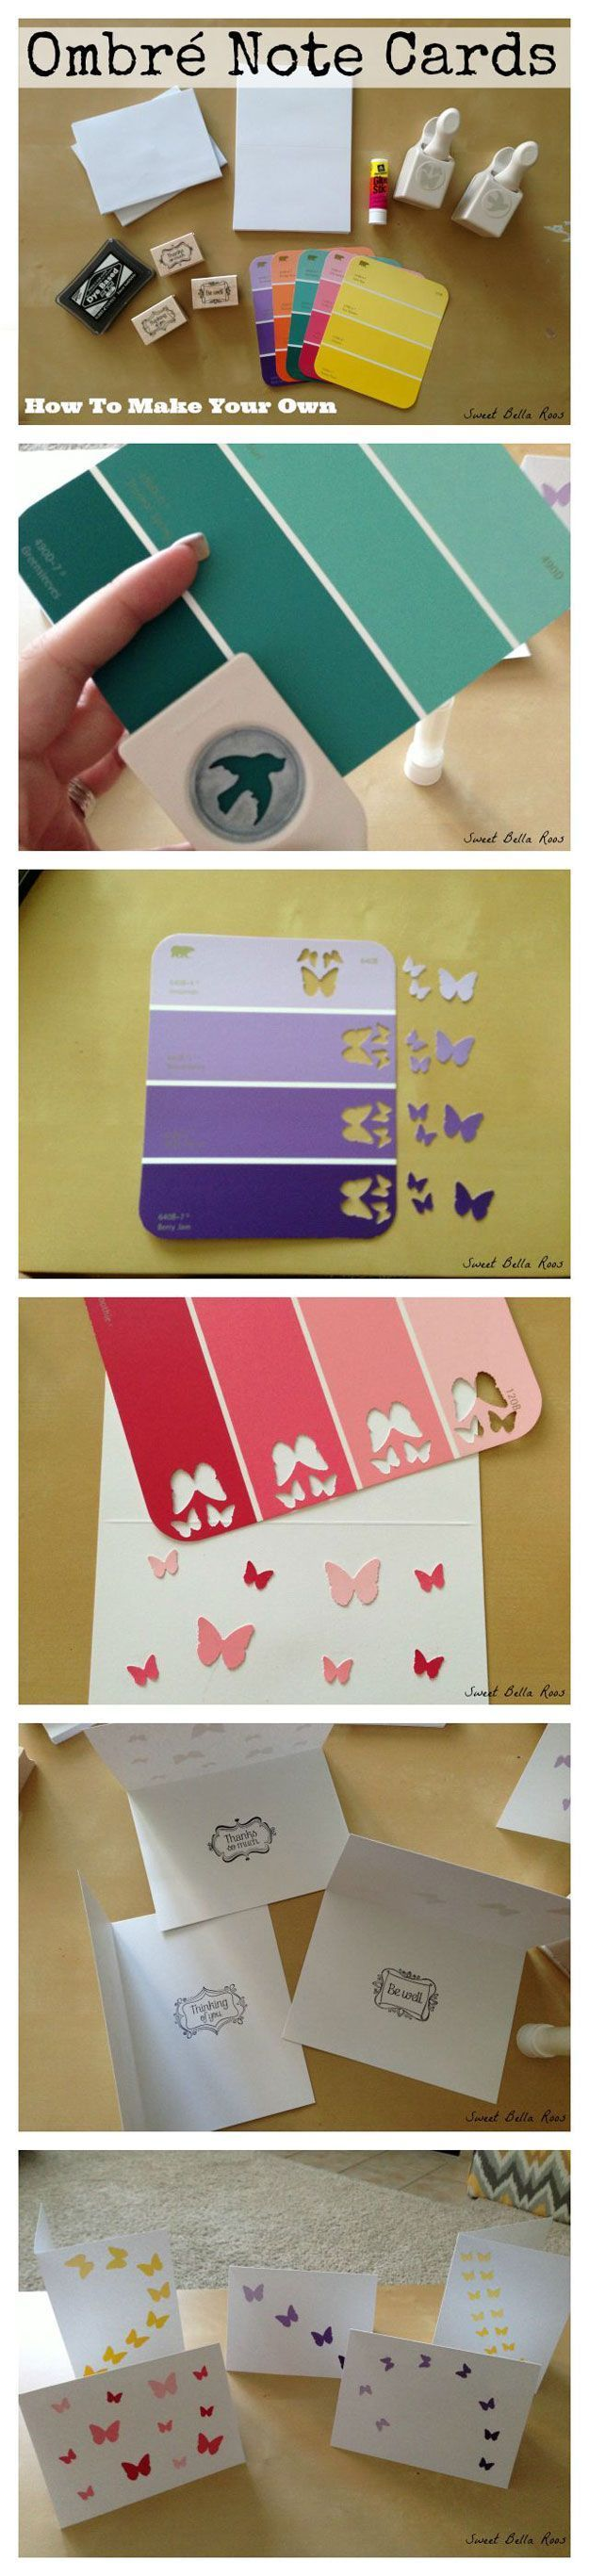 Cheap and Easy Scrapbook Making Ideas   Ombre Paint Chip Design by DIY Ready at http://diyready.com/cool-scrapbook-ideas-you-should-make/